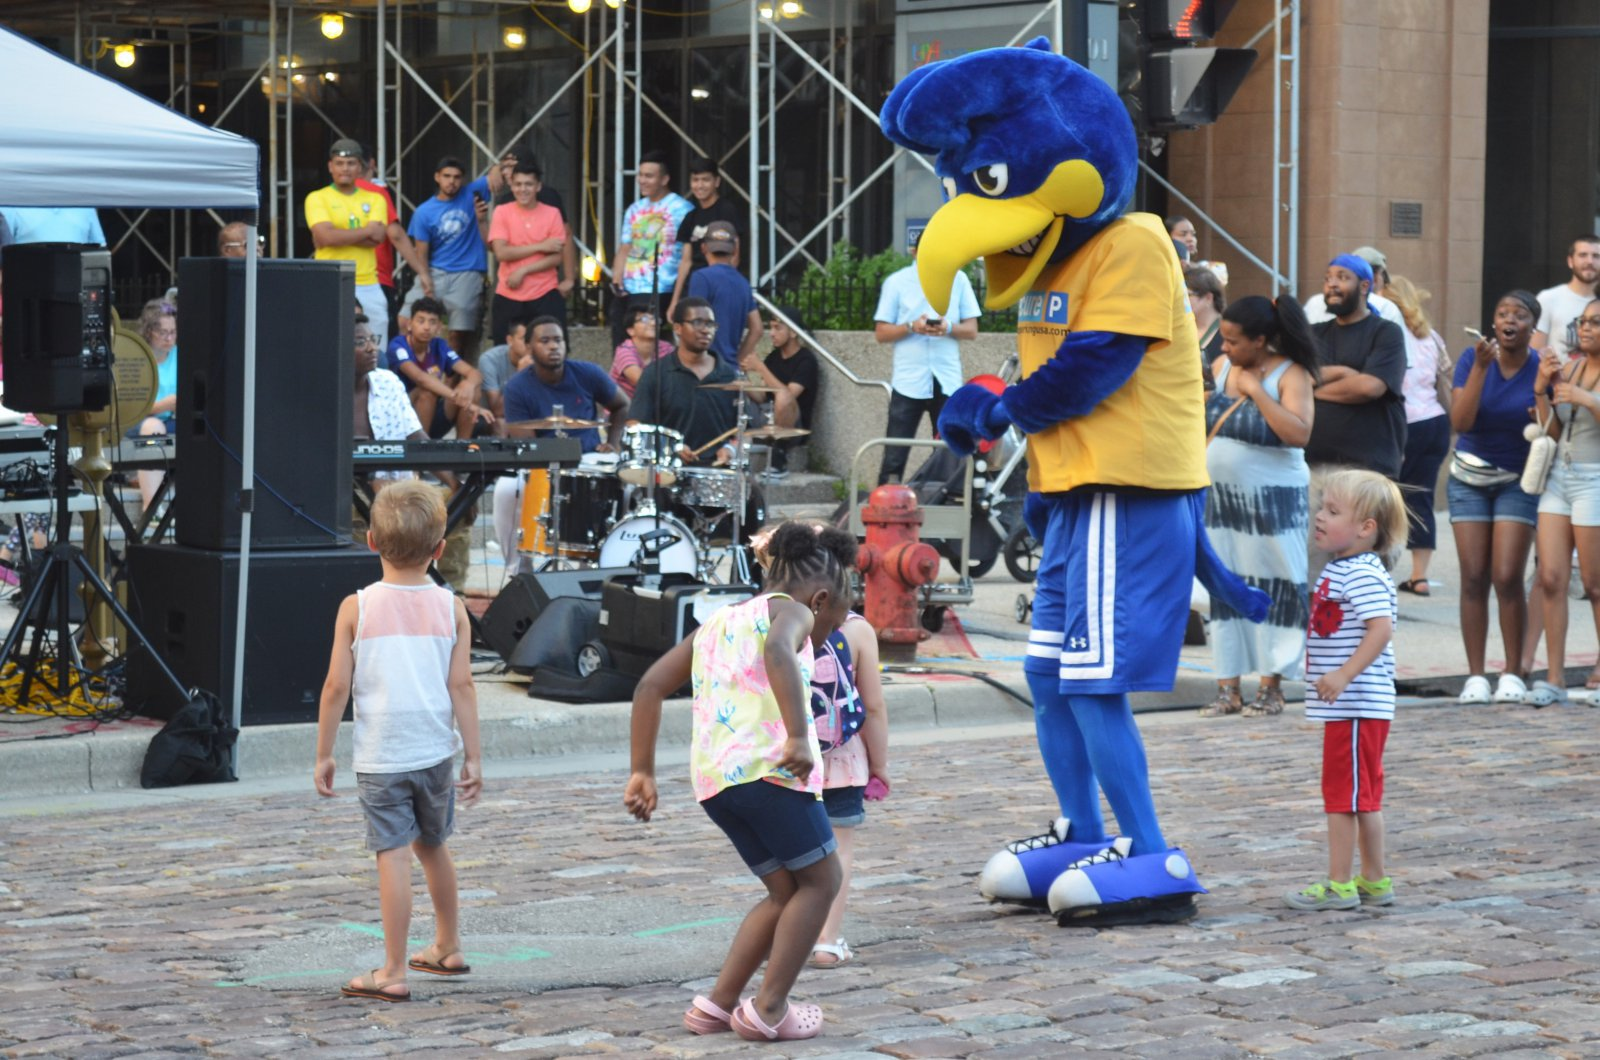 Children dance with the Secure Parking Mascot at the Night Market